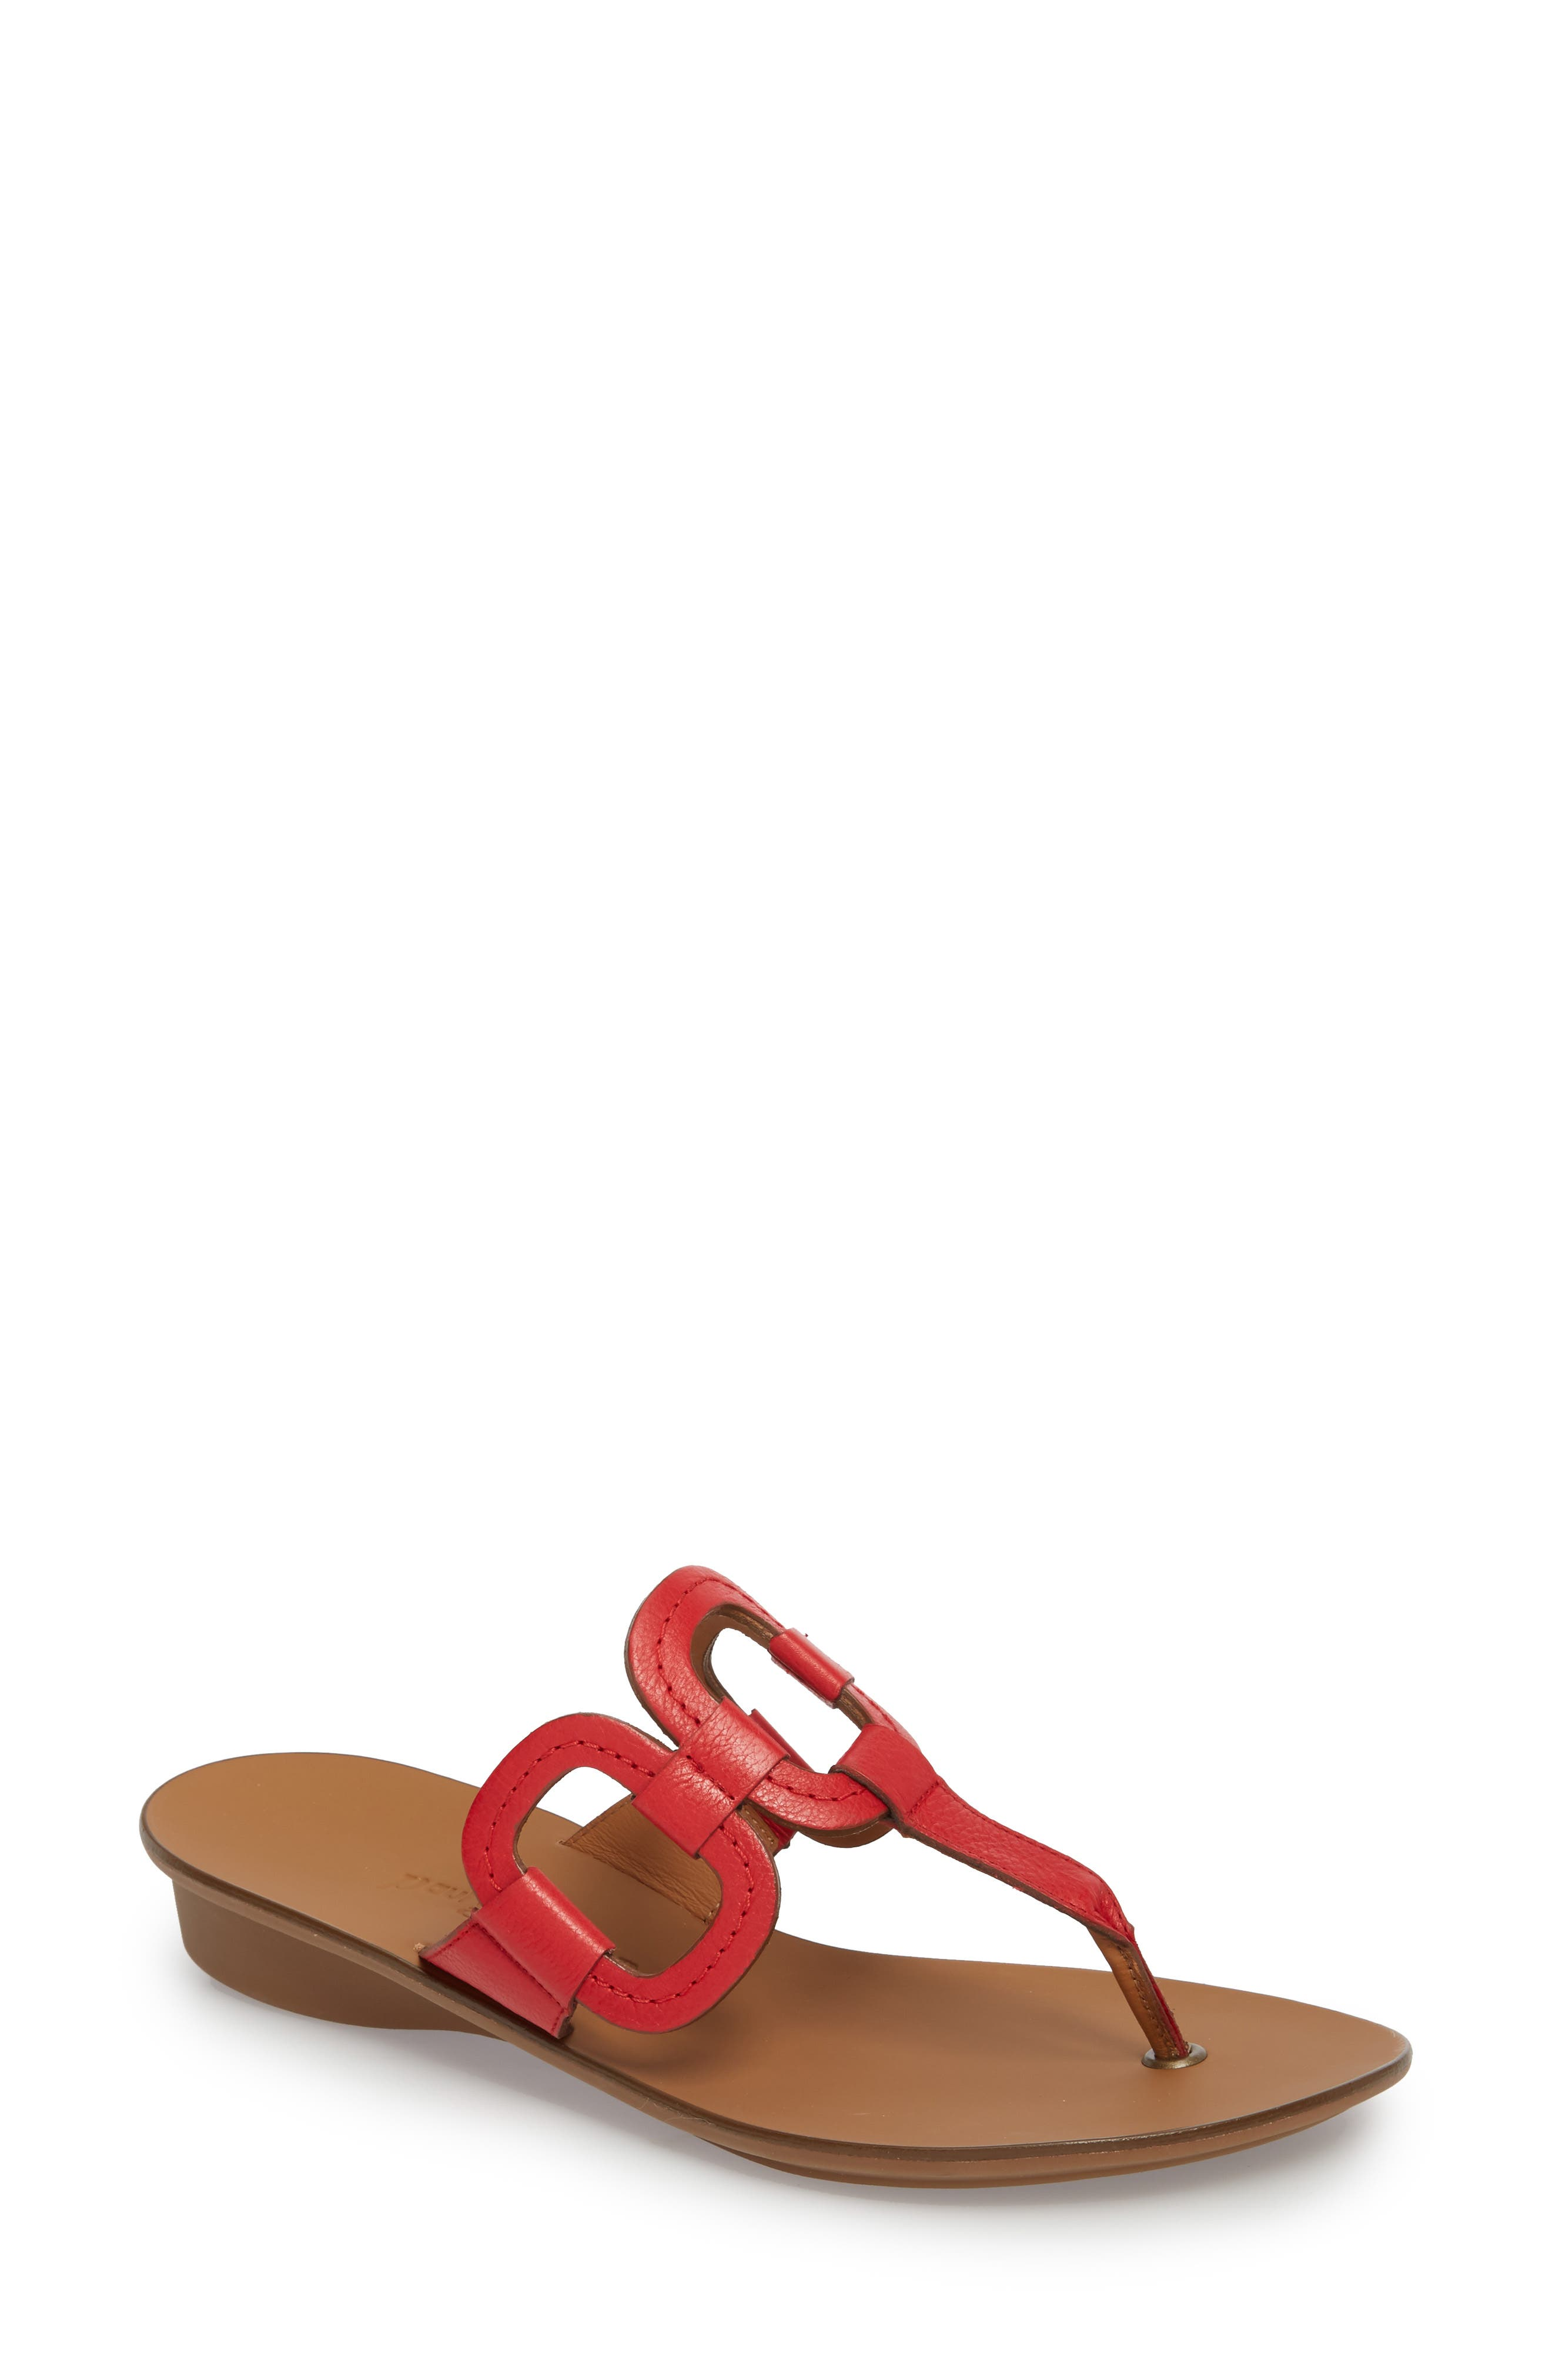 Lanai Flip-Flop,                             Main thumbnail 1, color,                             Red Leather